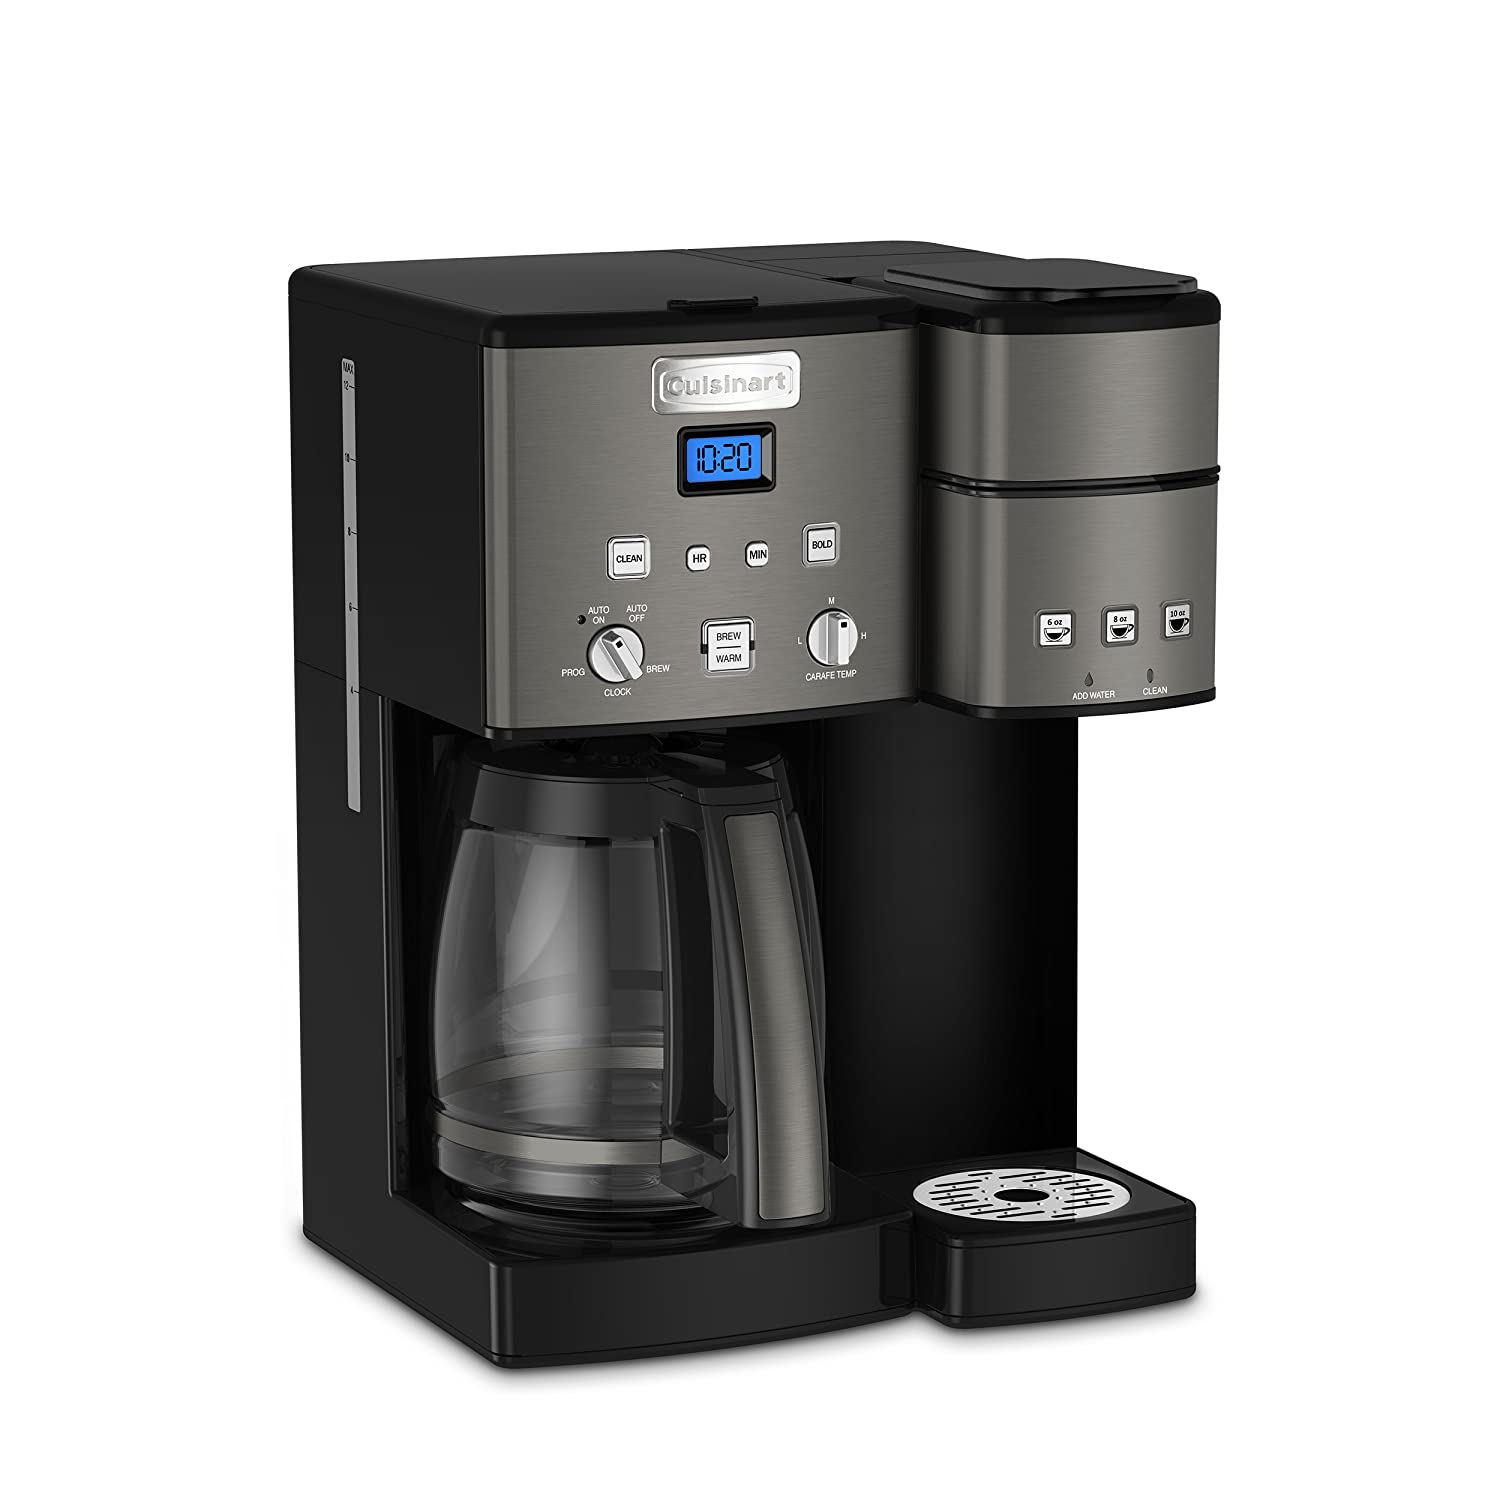 cuisinart single serve coffee maker manual